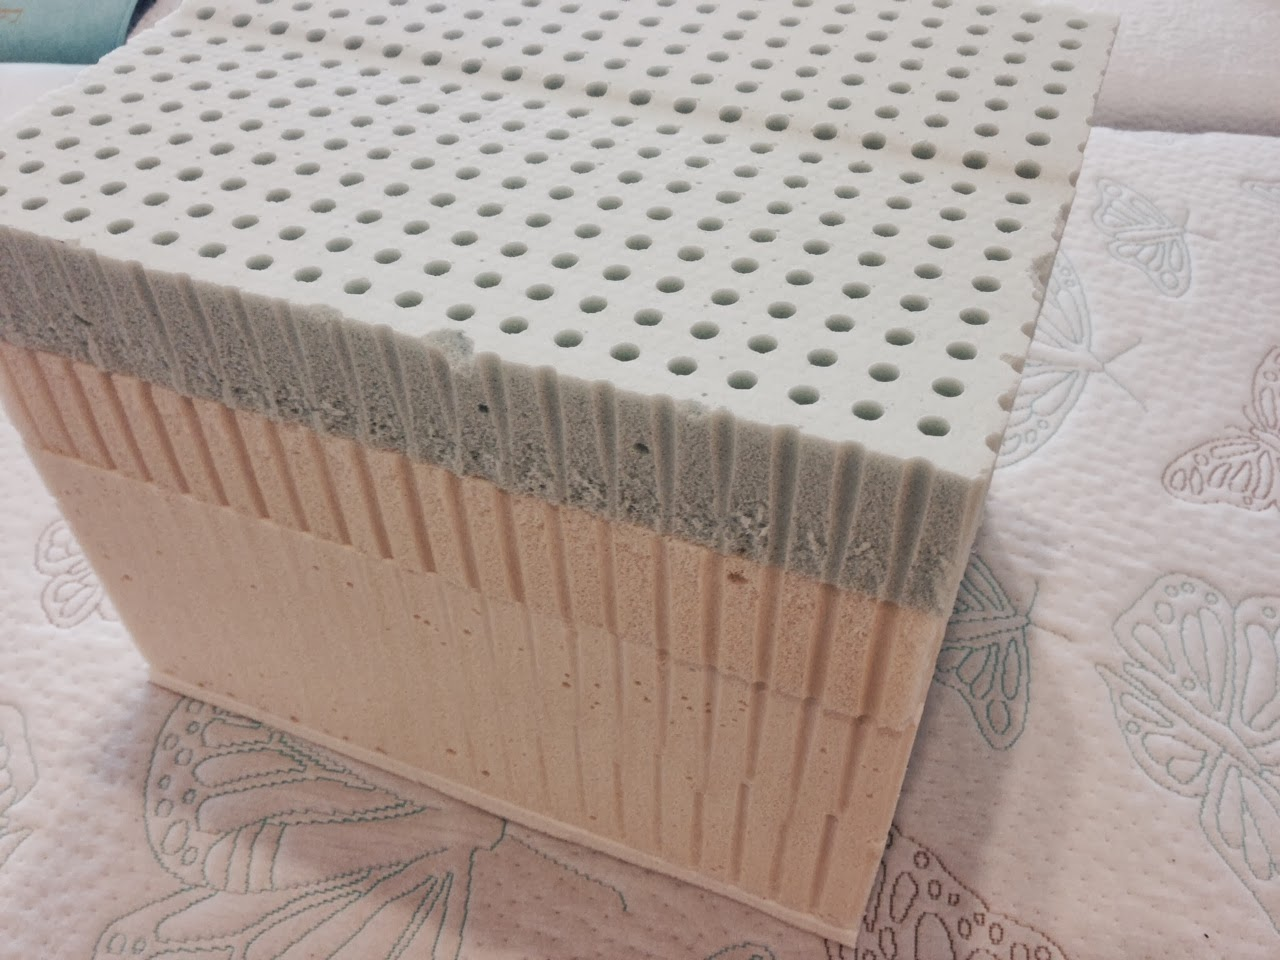 Good Morning Mattress Center THE NEW TALALAY LATEX COLLECTION